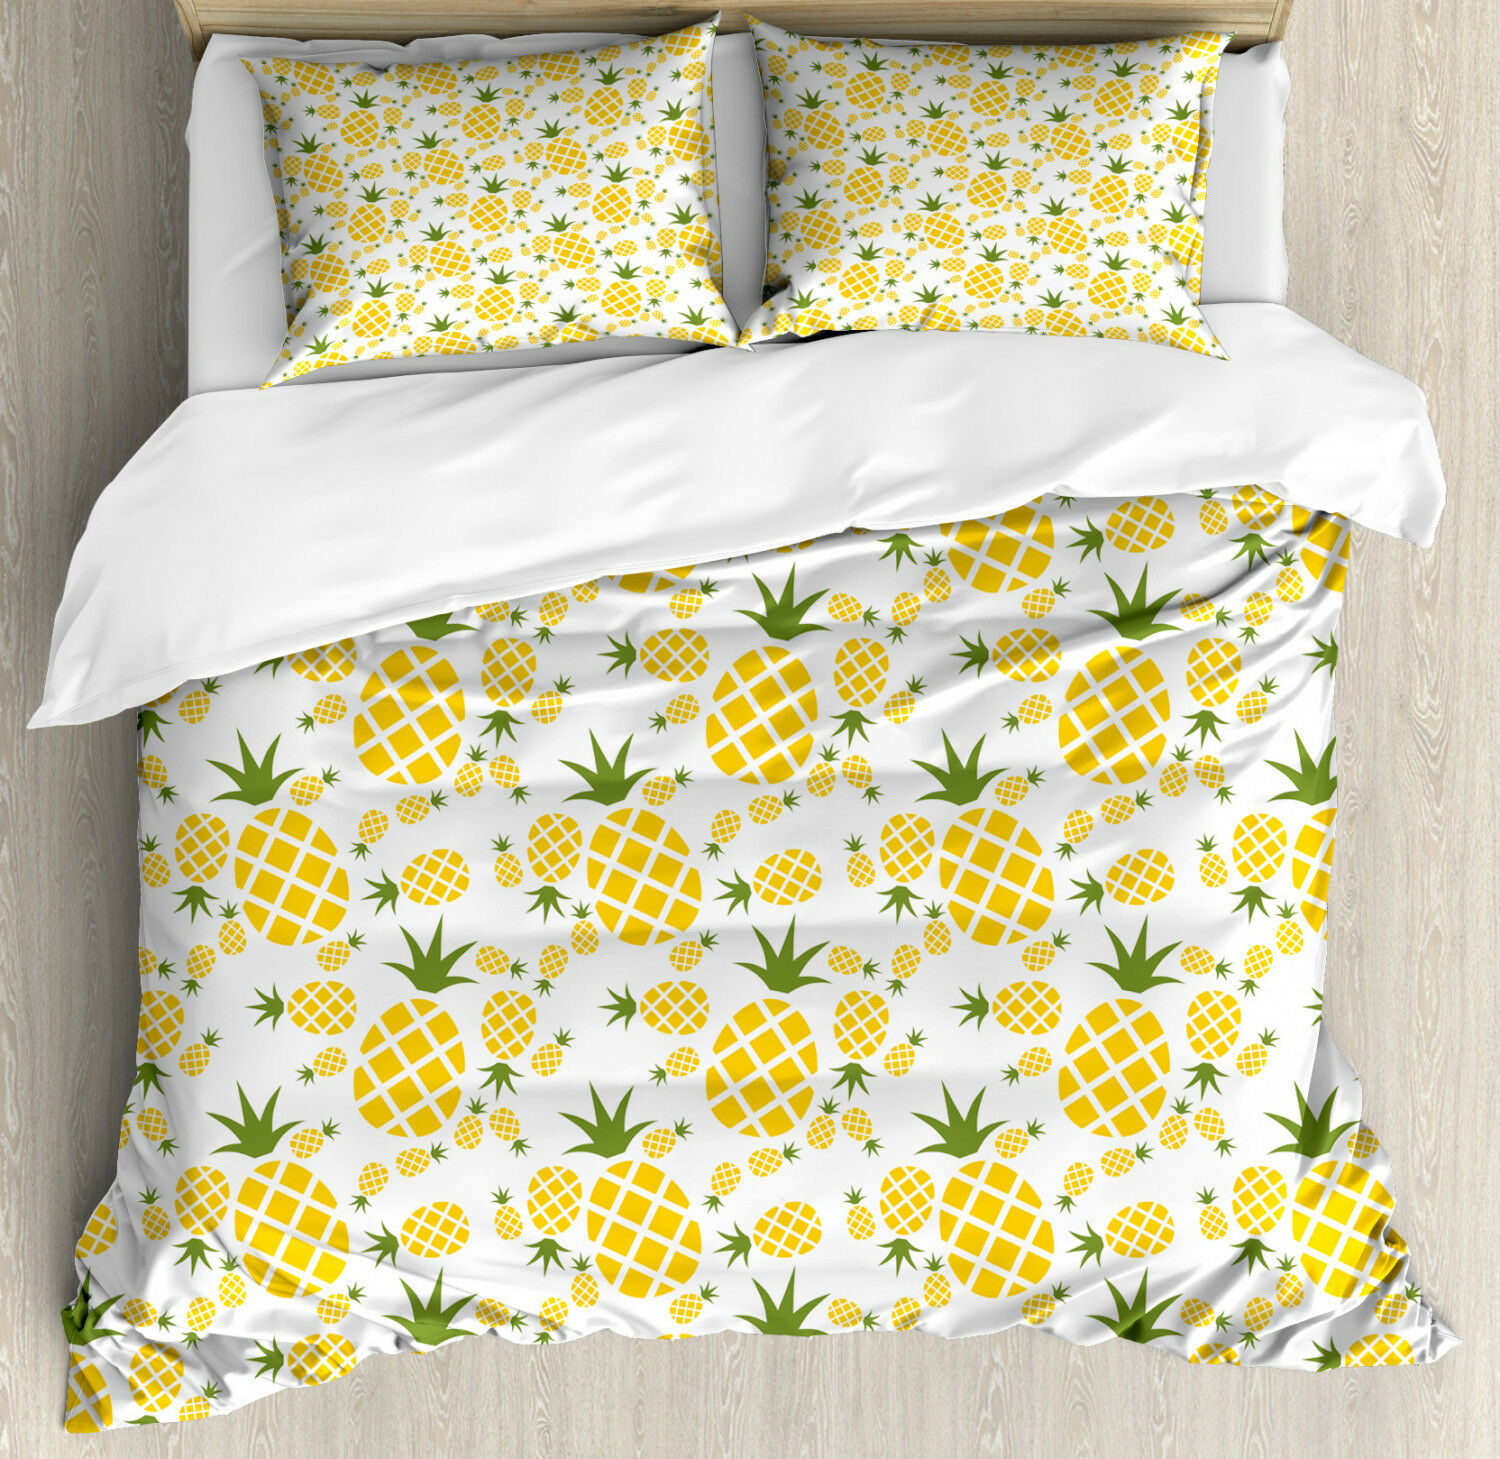 Green and Yellow Duvet Cover Set with Pillow Shams Organic Fruits Print